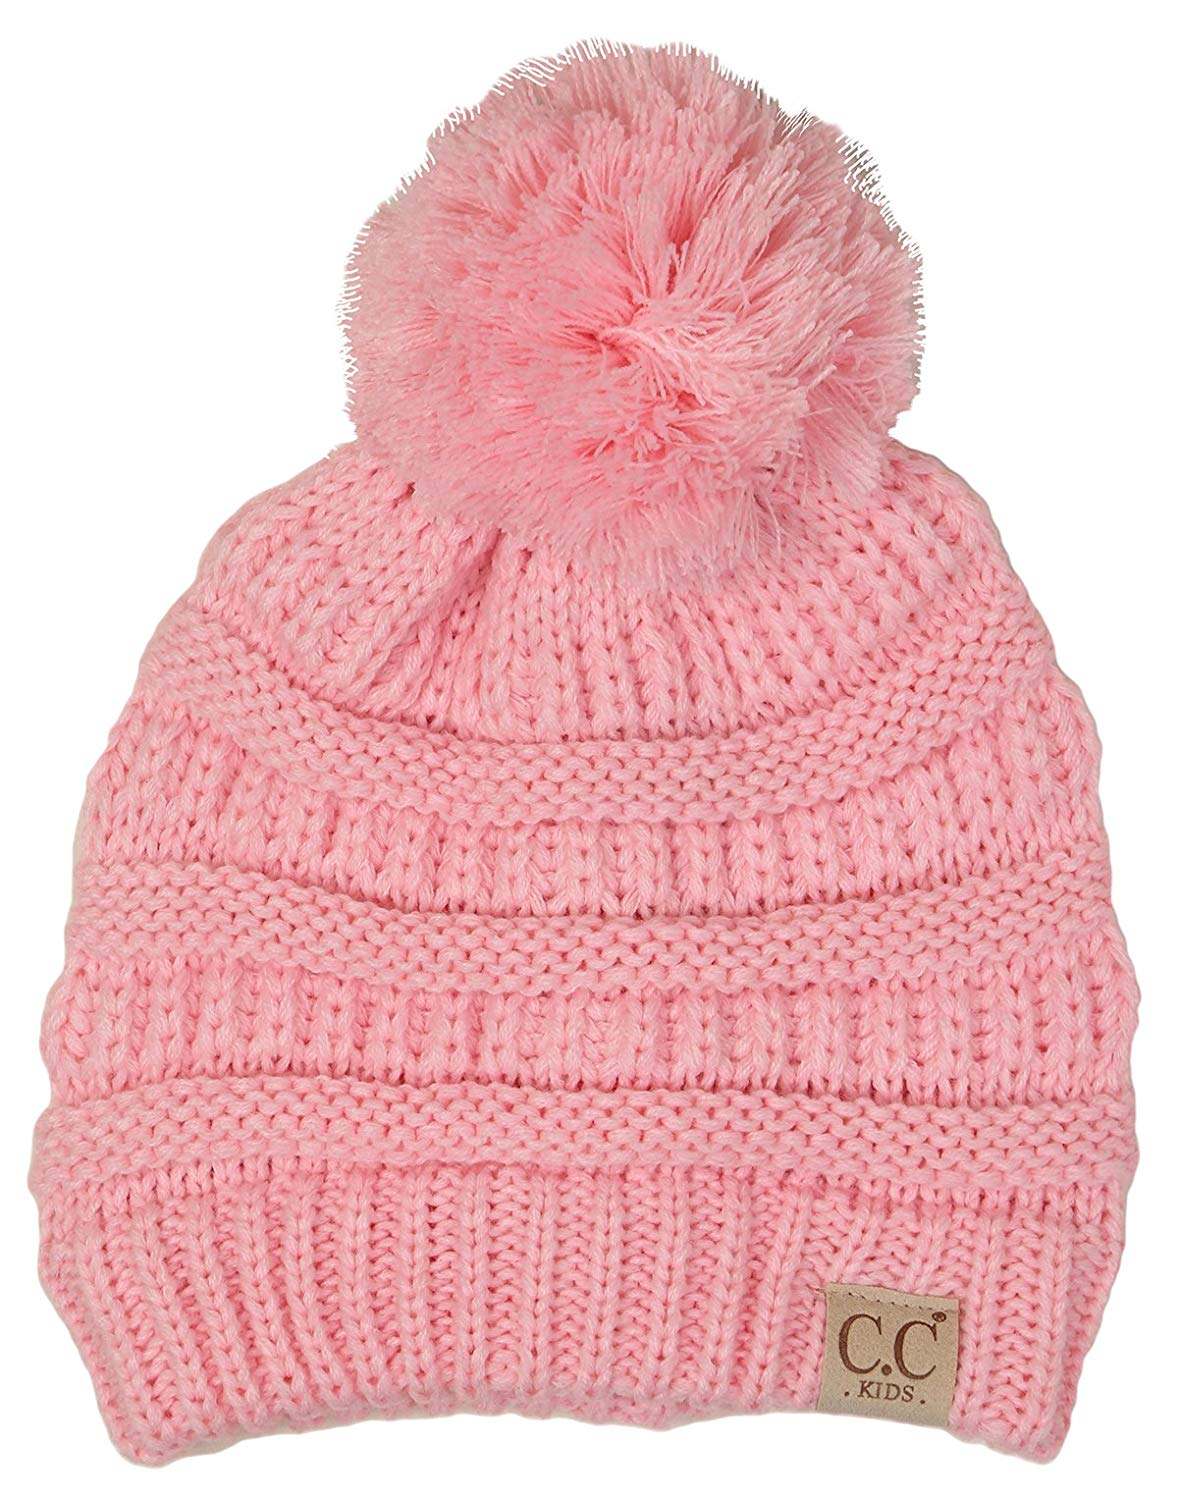 266c7b4f430 Get Quotations · Funky Junque CC Kids Baby Toddler Cable Knit Children s  Pom Winter Hat Beanie